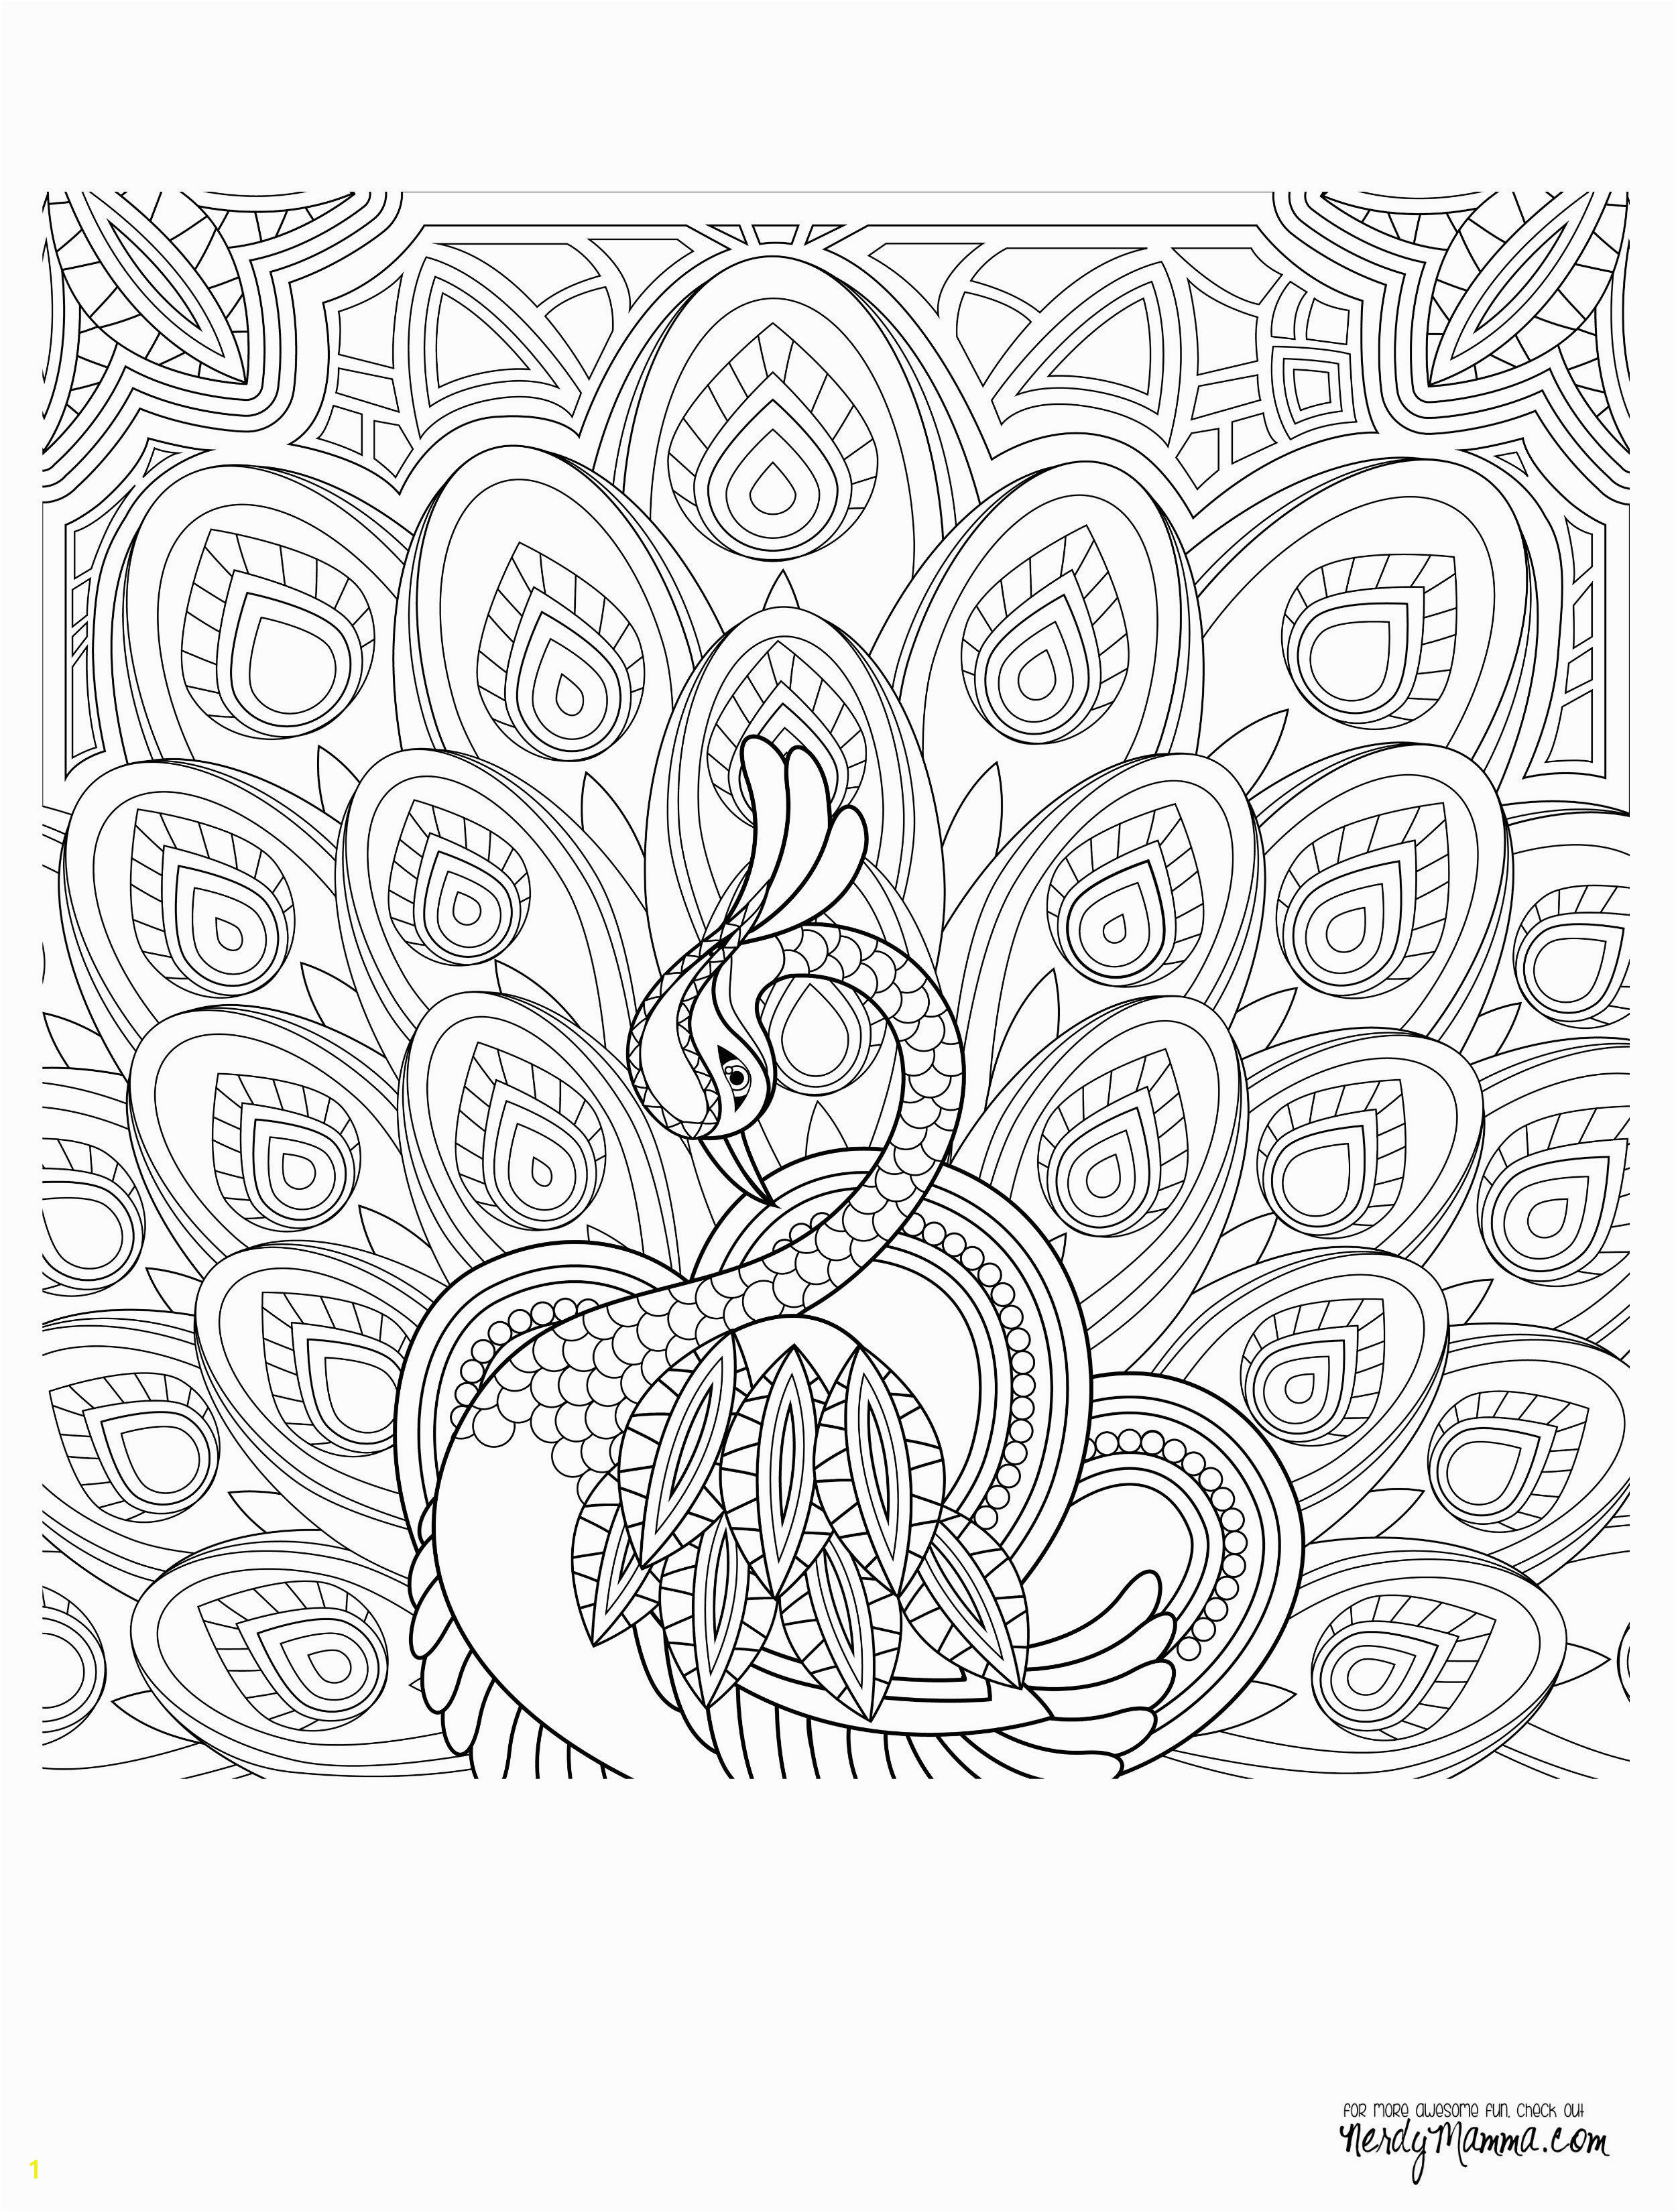 Coloring Pages Art Masterpieces Peacock Feather Coloring Pages Colouring Adult Detailed Advanced